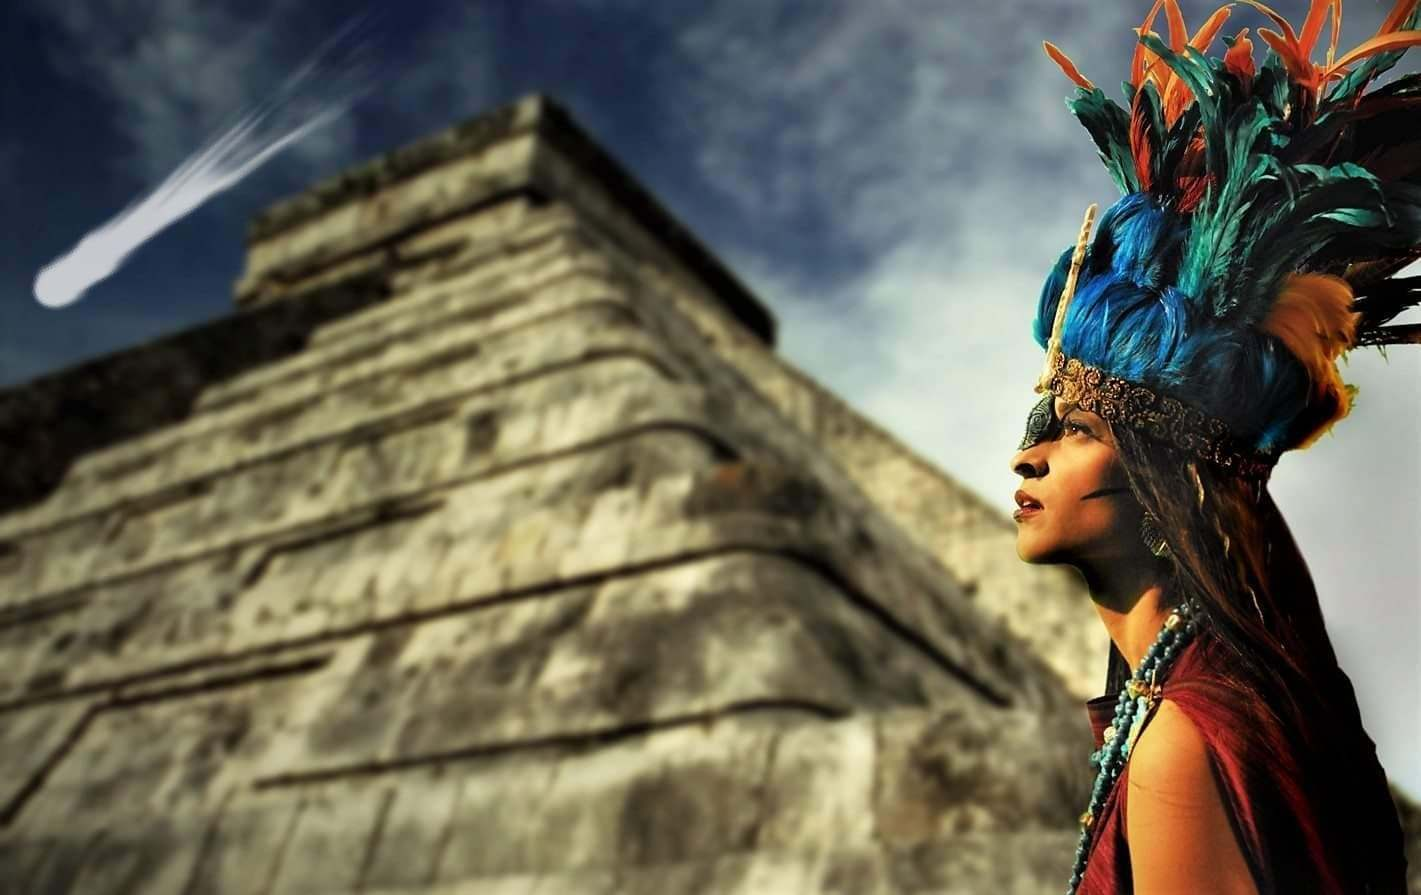 They find remains of a mysterious Mayan queen of 1,500 years old 10